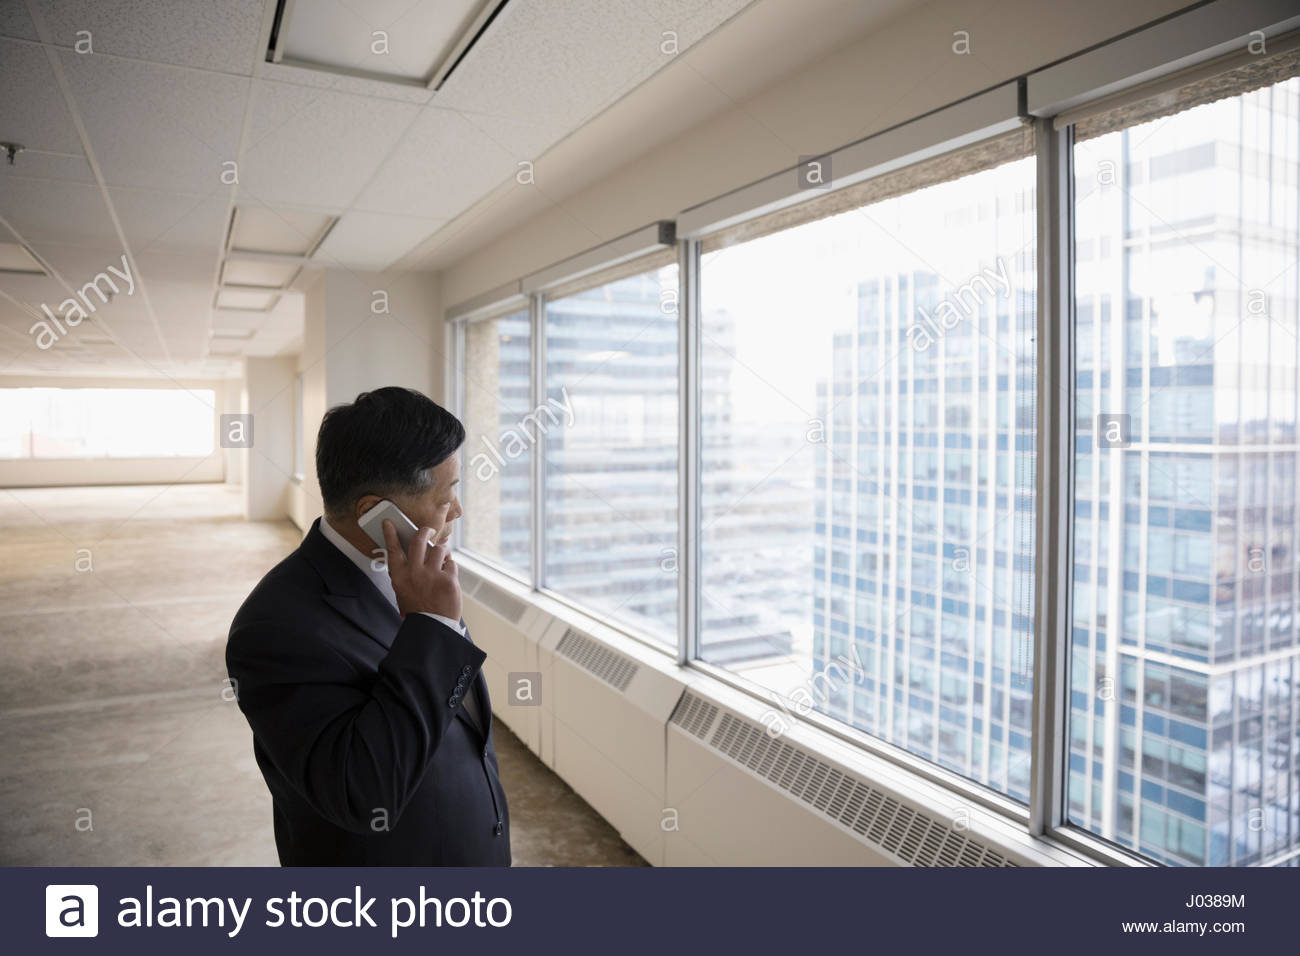 Businessman talking on cell phone in empty highrise office - Stock Image